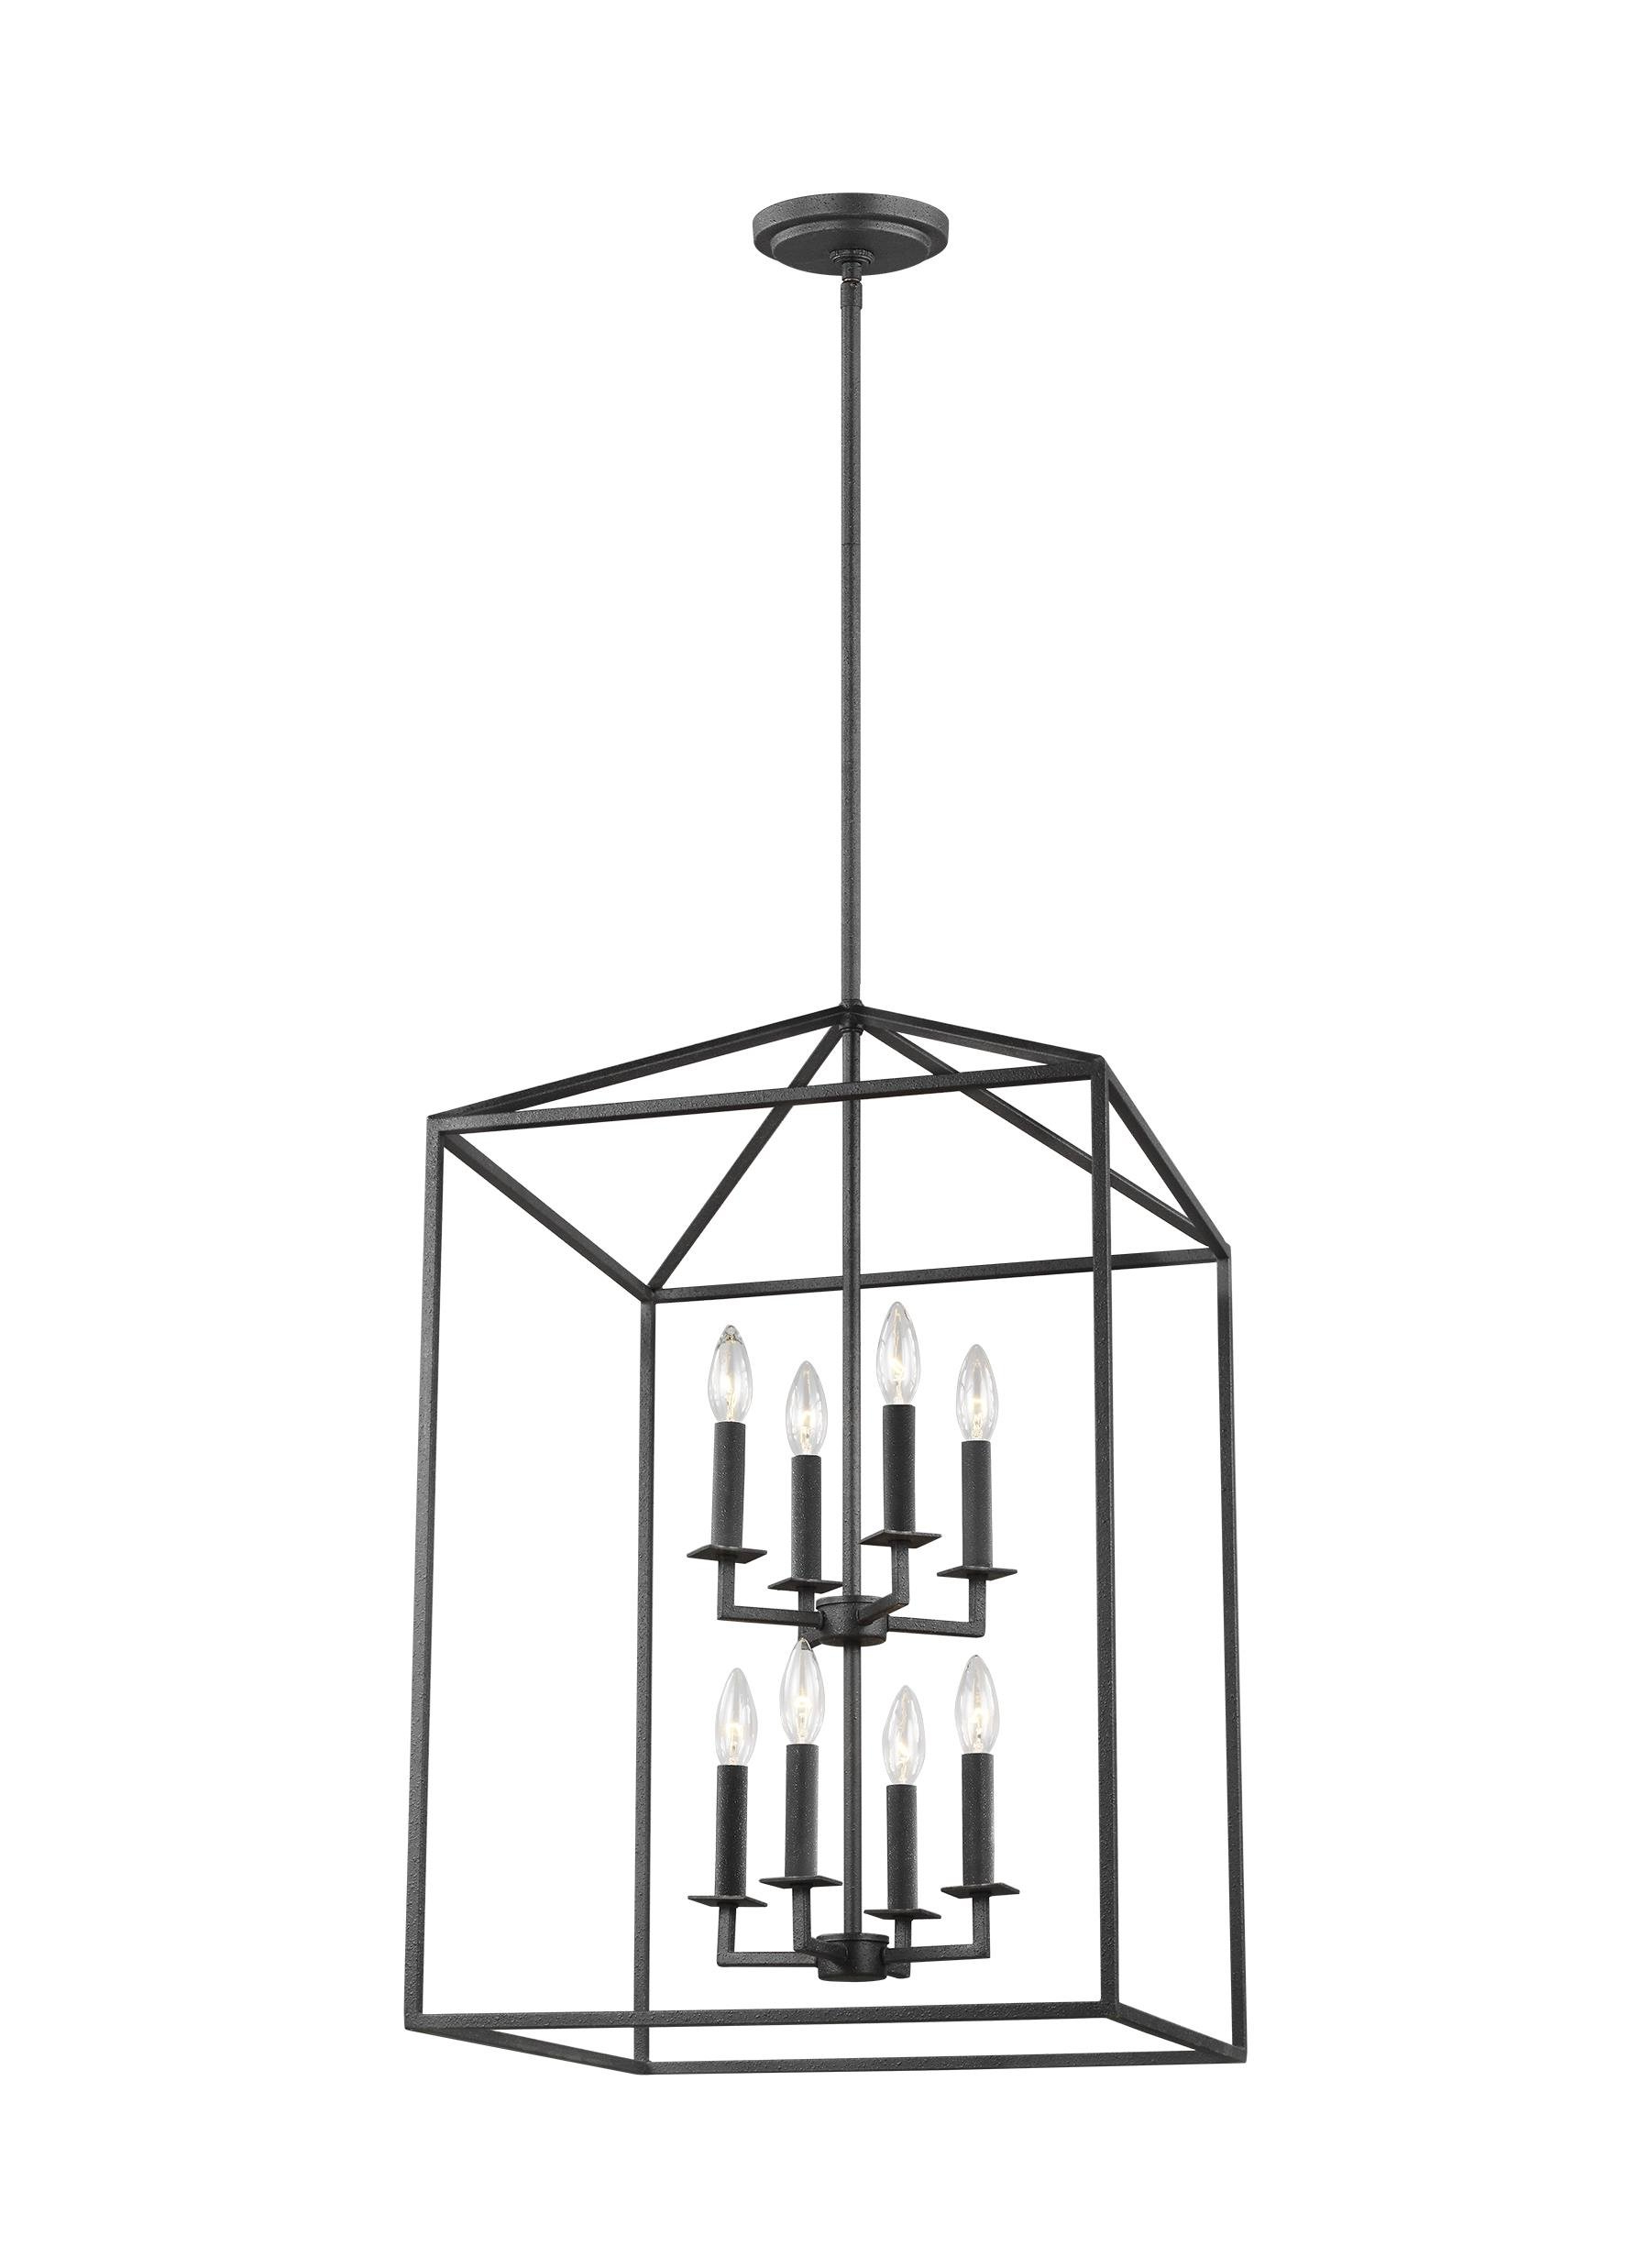 Odie 8 Light Kitchen Island Square / Rectangle Pendants Inside Recent Odie 8 Light Lantern Square / Rectangle Pendant (View 13 of 25)